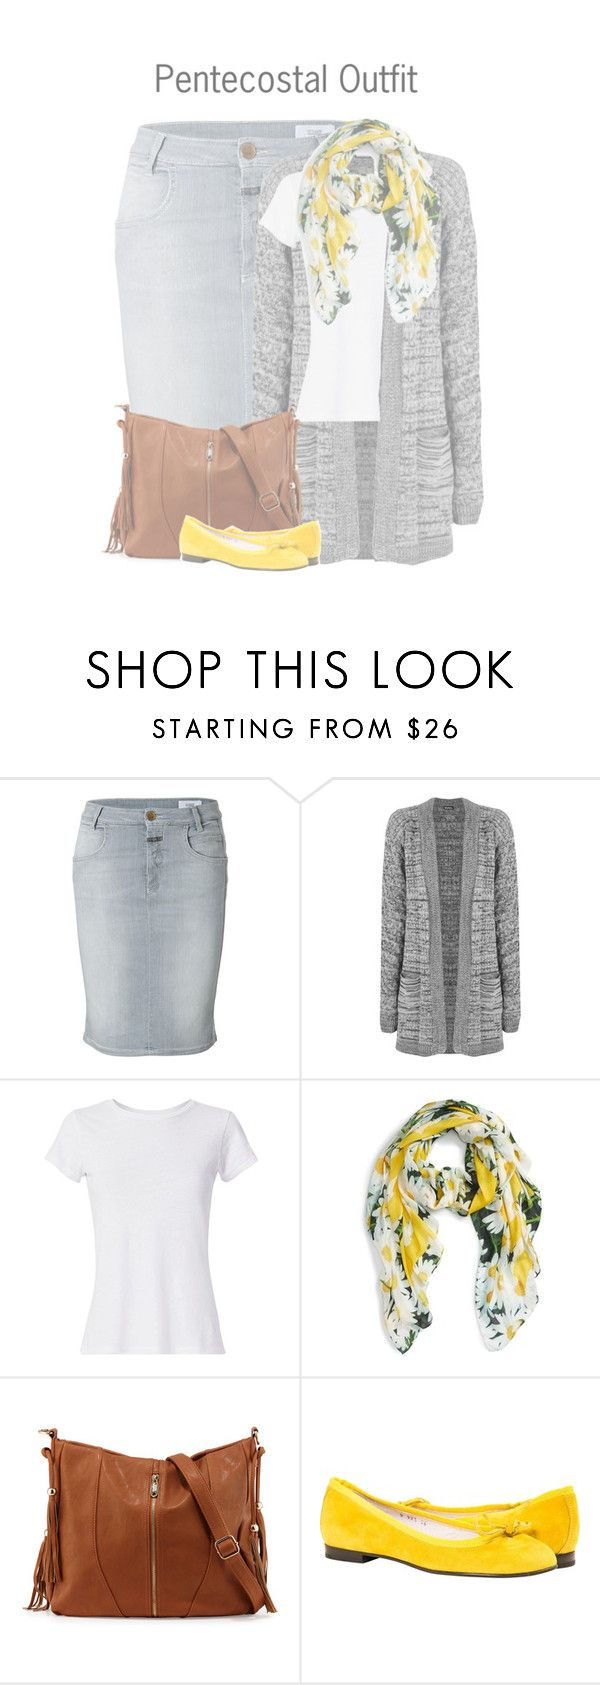 """Pentecostal Outfit"" by kateremington-1 ❤ liked on Polyvore featuring Closed, WearAll, Hanes, Kate Spade and Urban Originals"